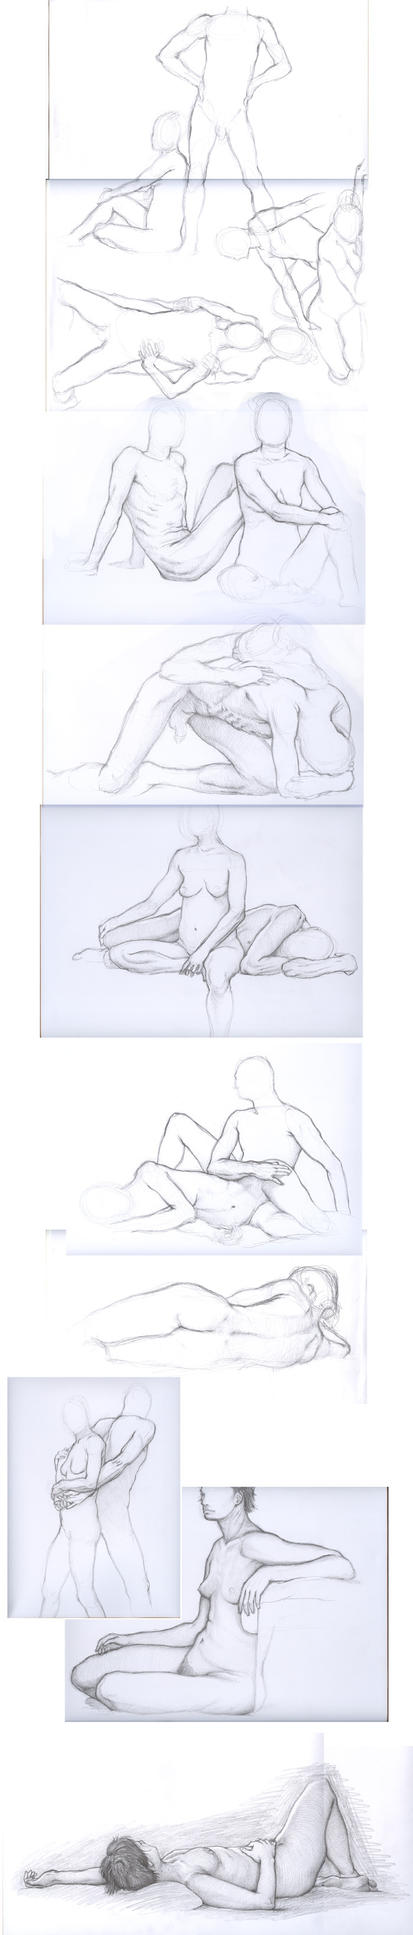 Life Drawing 01 by FabianMonk